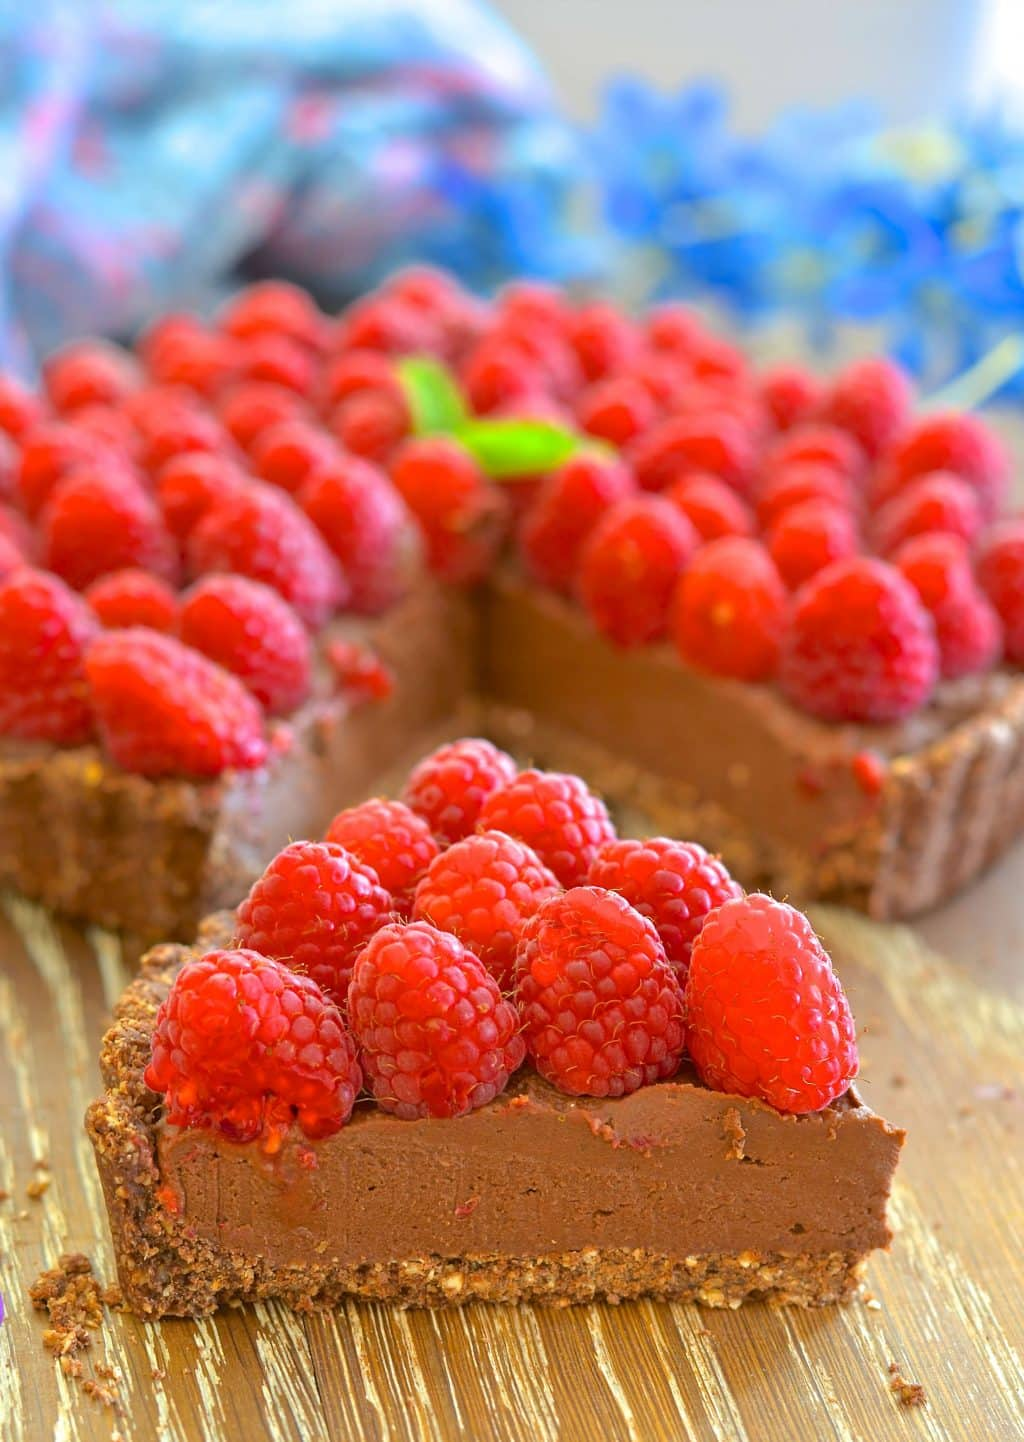 Want a dessert that looks and tastes decadent but is secretly quite good for you? I've got you covered with my Healthy Raspberry Chocolate Fudge Tart!